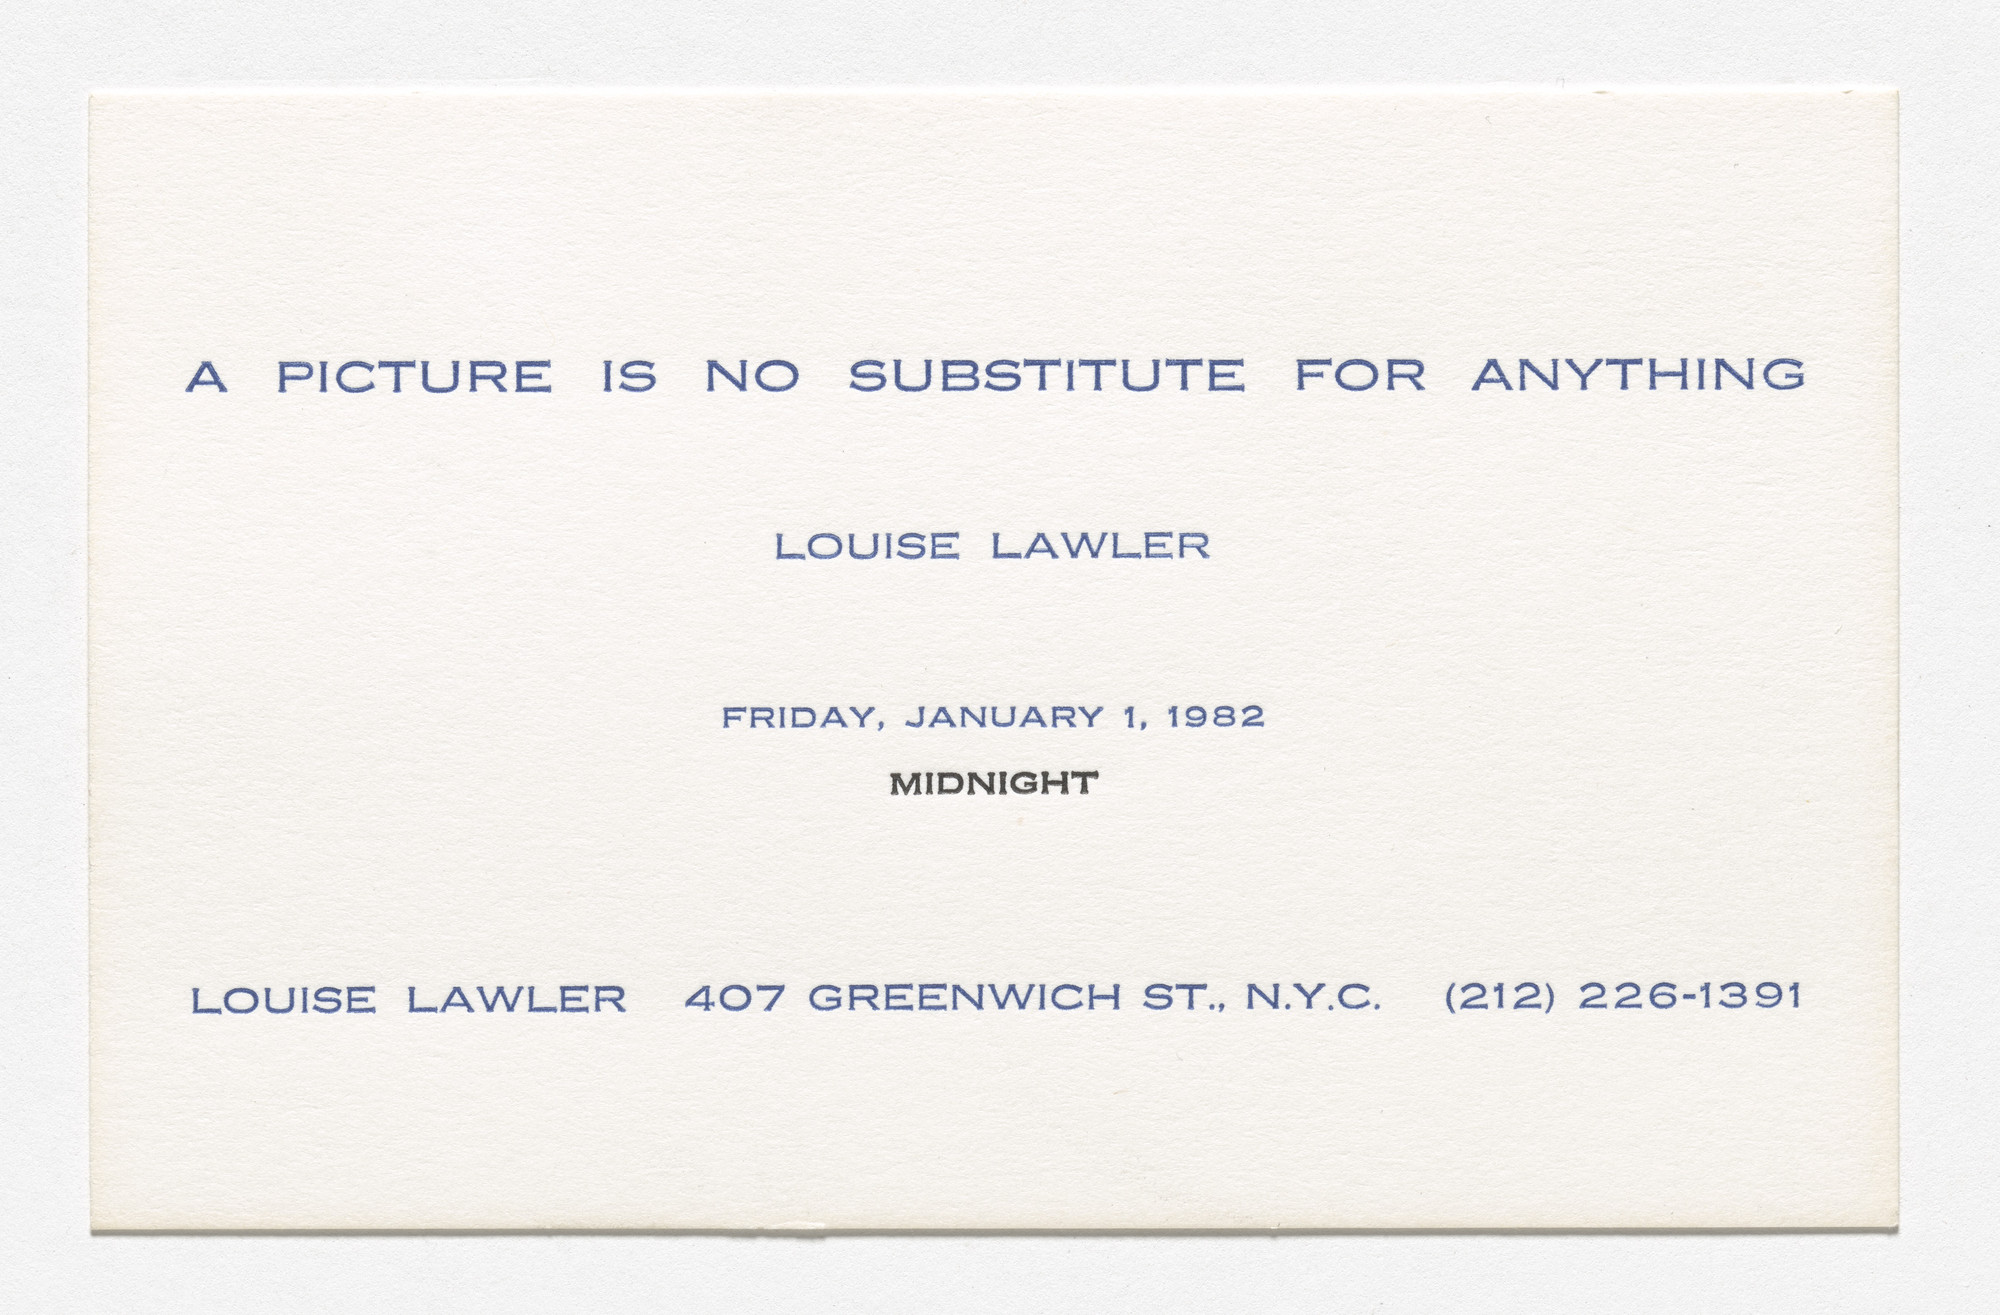 Louise Lawler, Sherrie Levine. Announcement card for A Picture Is No Substitute for Anything, Louise Lawler, 407 Greenwich Street, New York, January 1, 1982. 1982